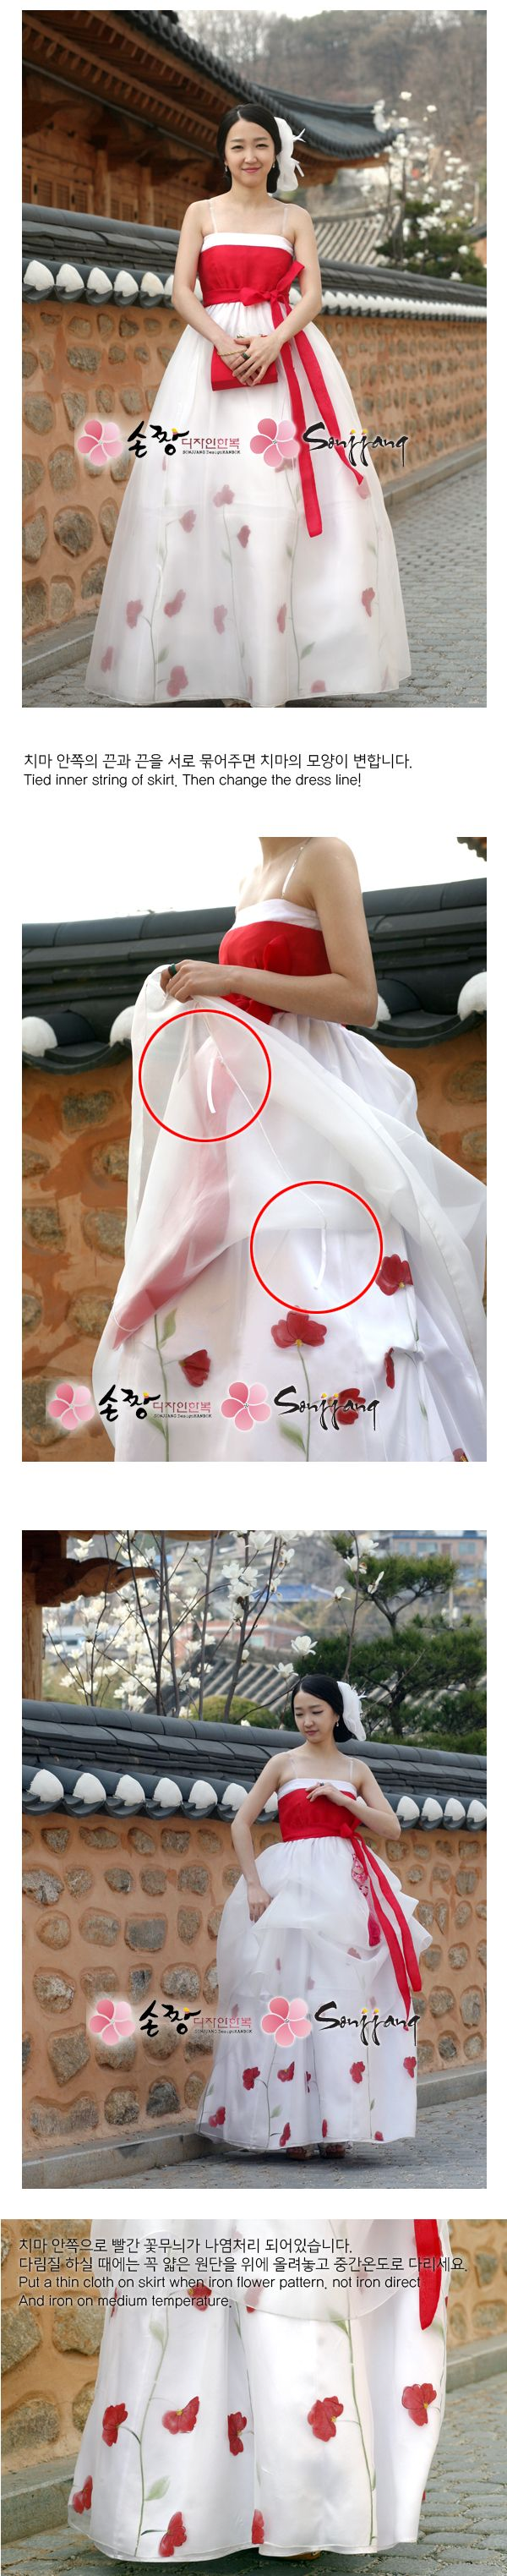 there is a string of skirt that can be tied to change the dress line! very clever